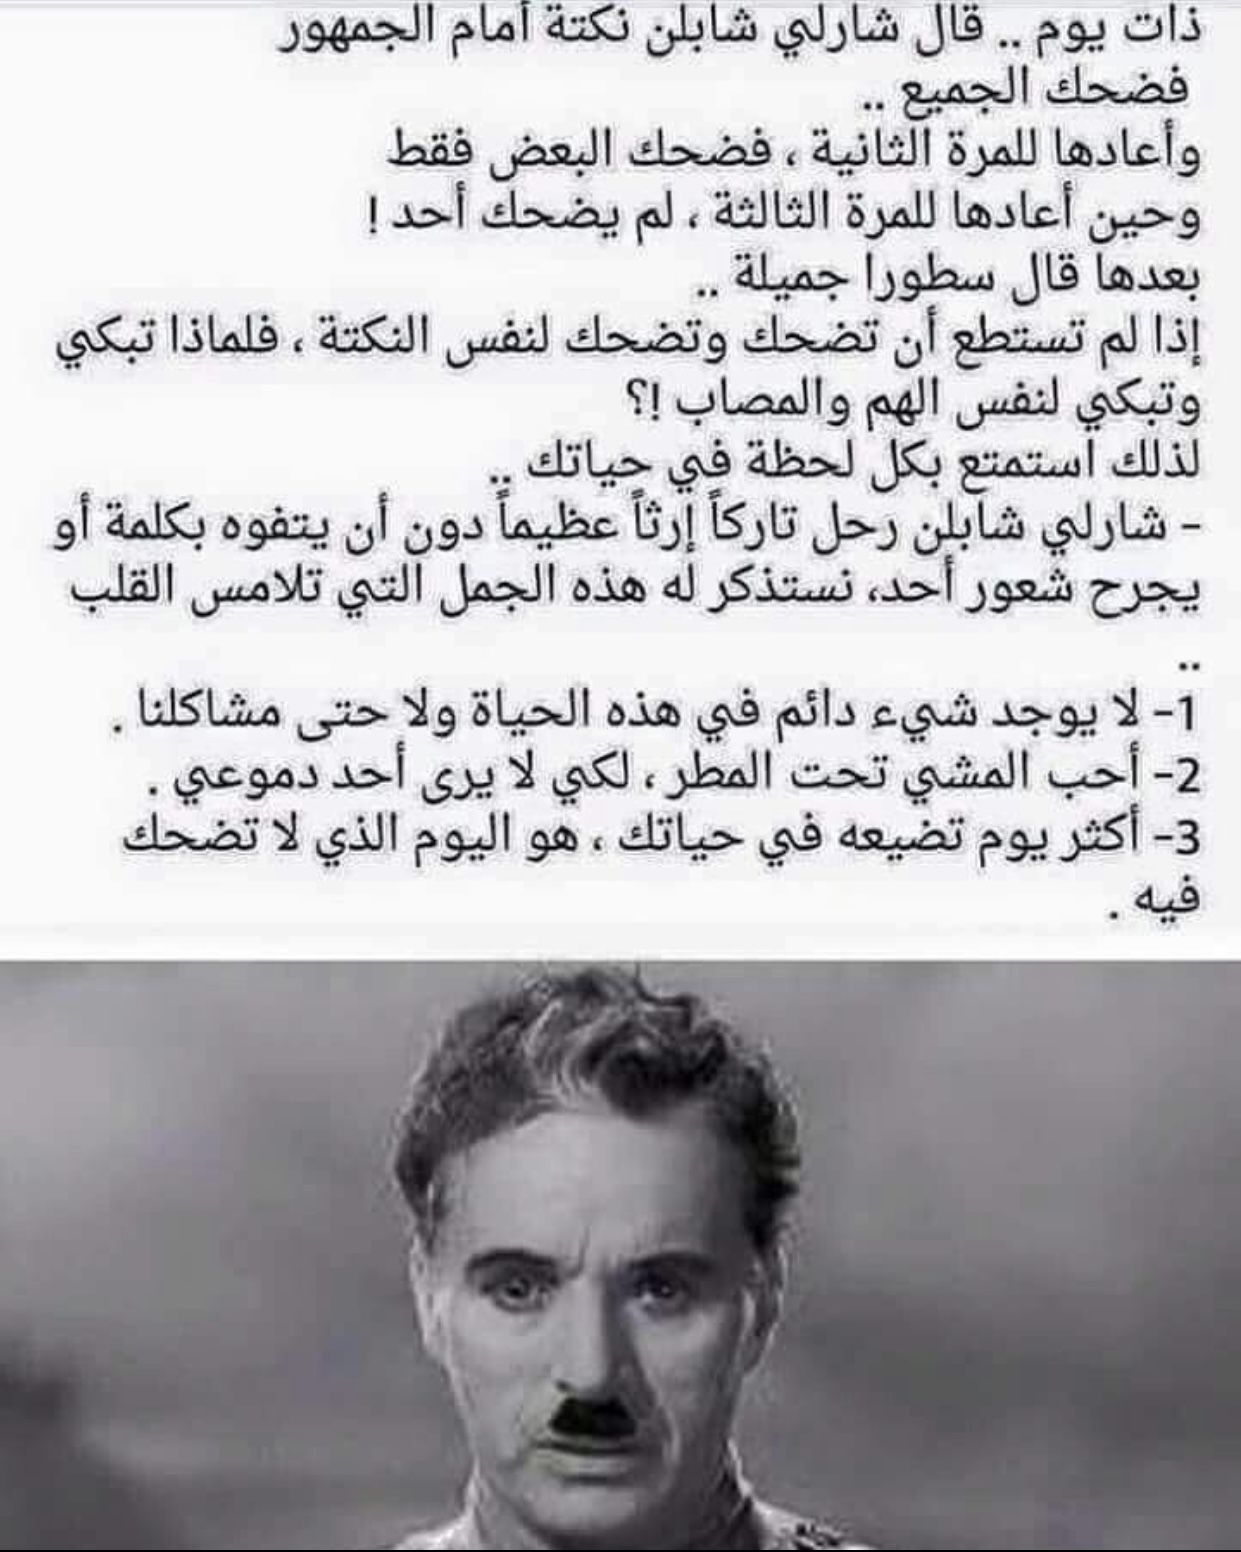 Pin By Samar Anan On خواطر In 2021 Historical Figures Historical Quotes